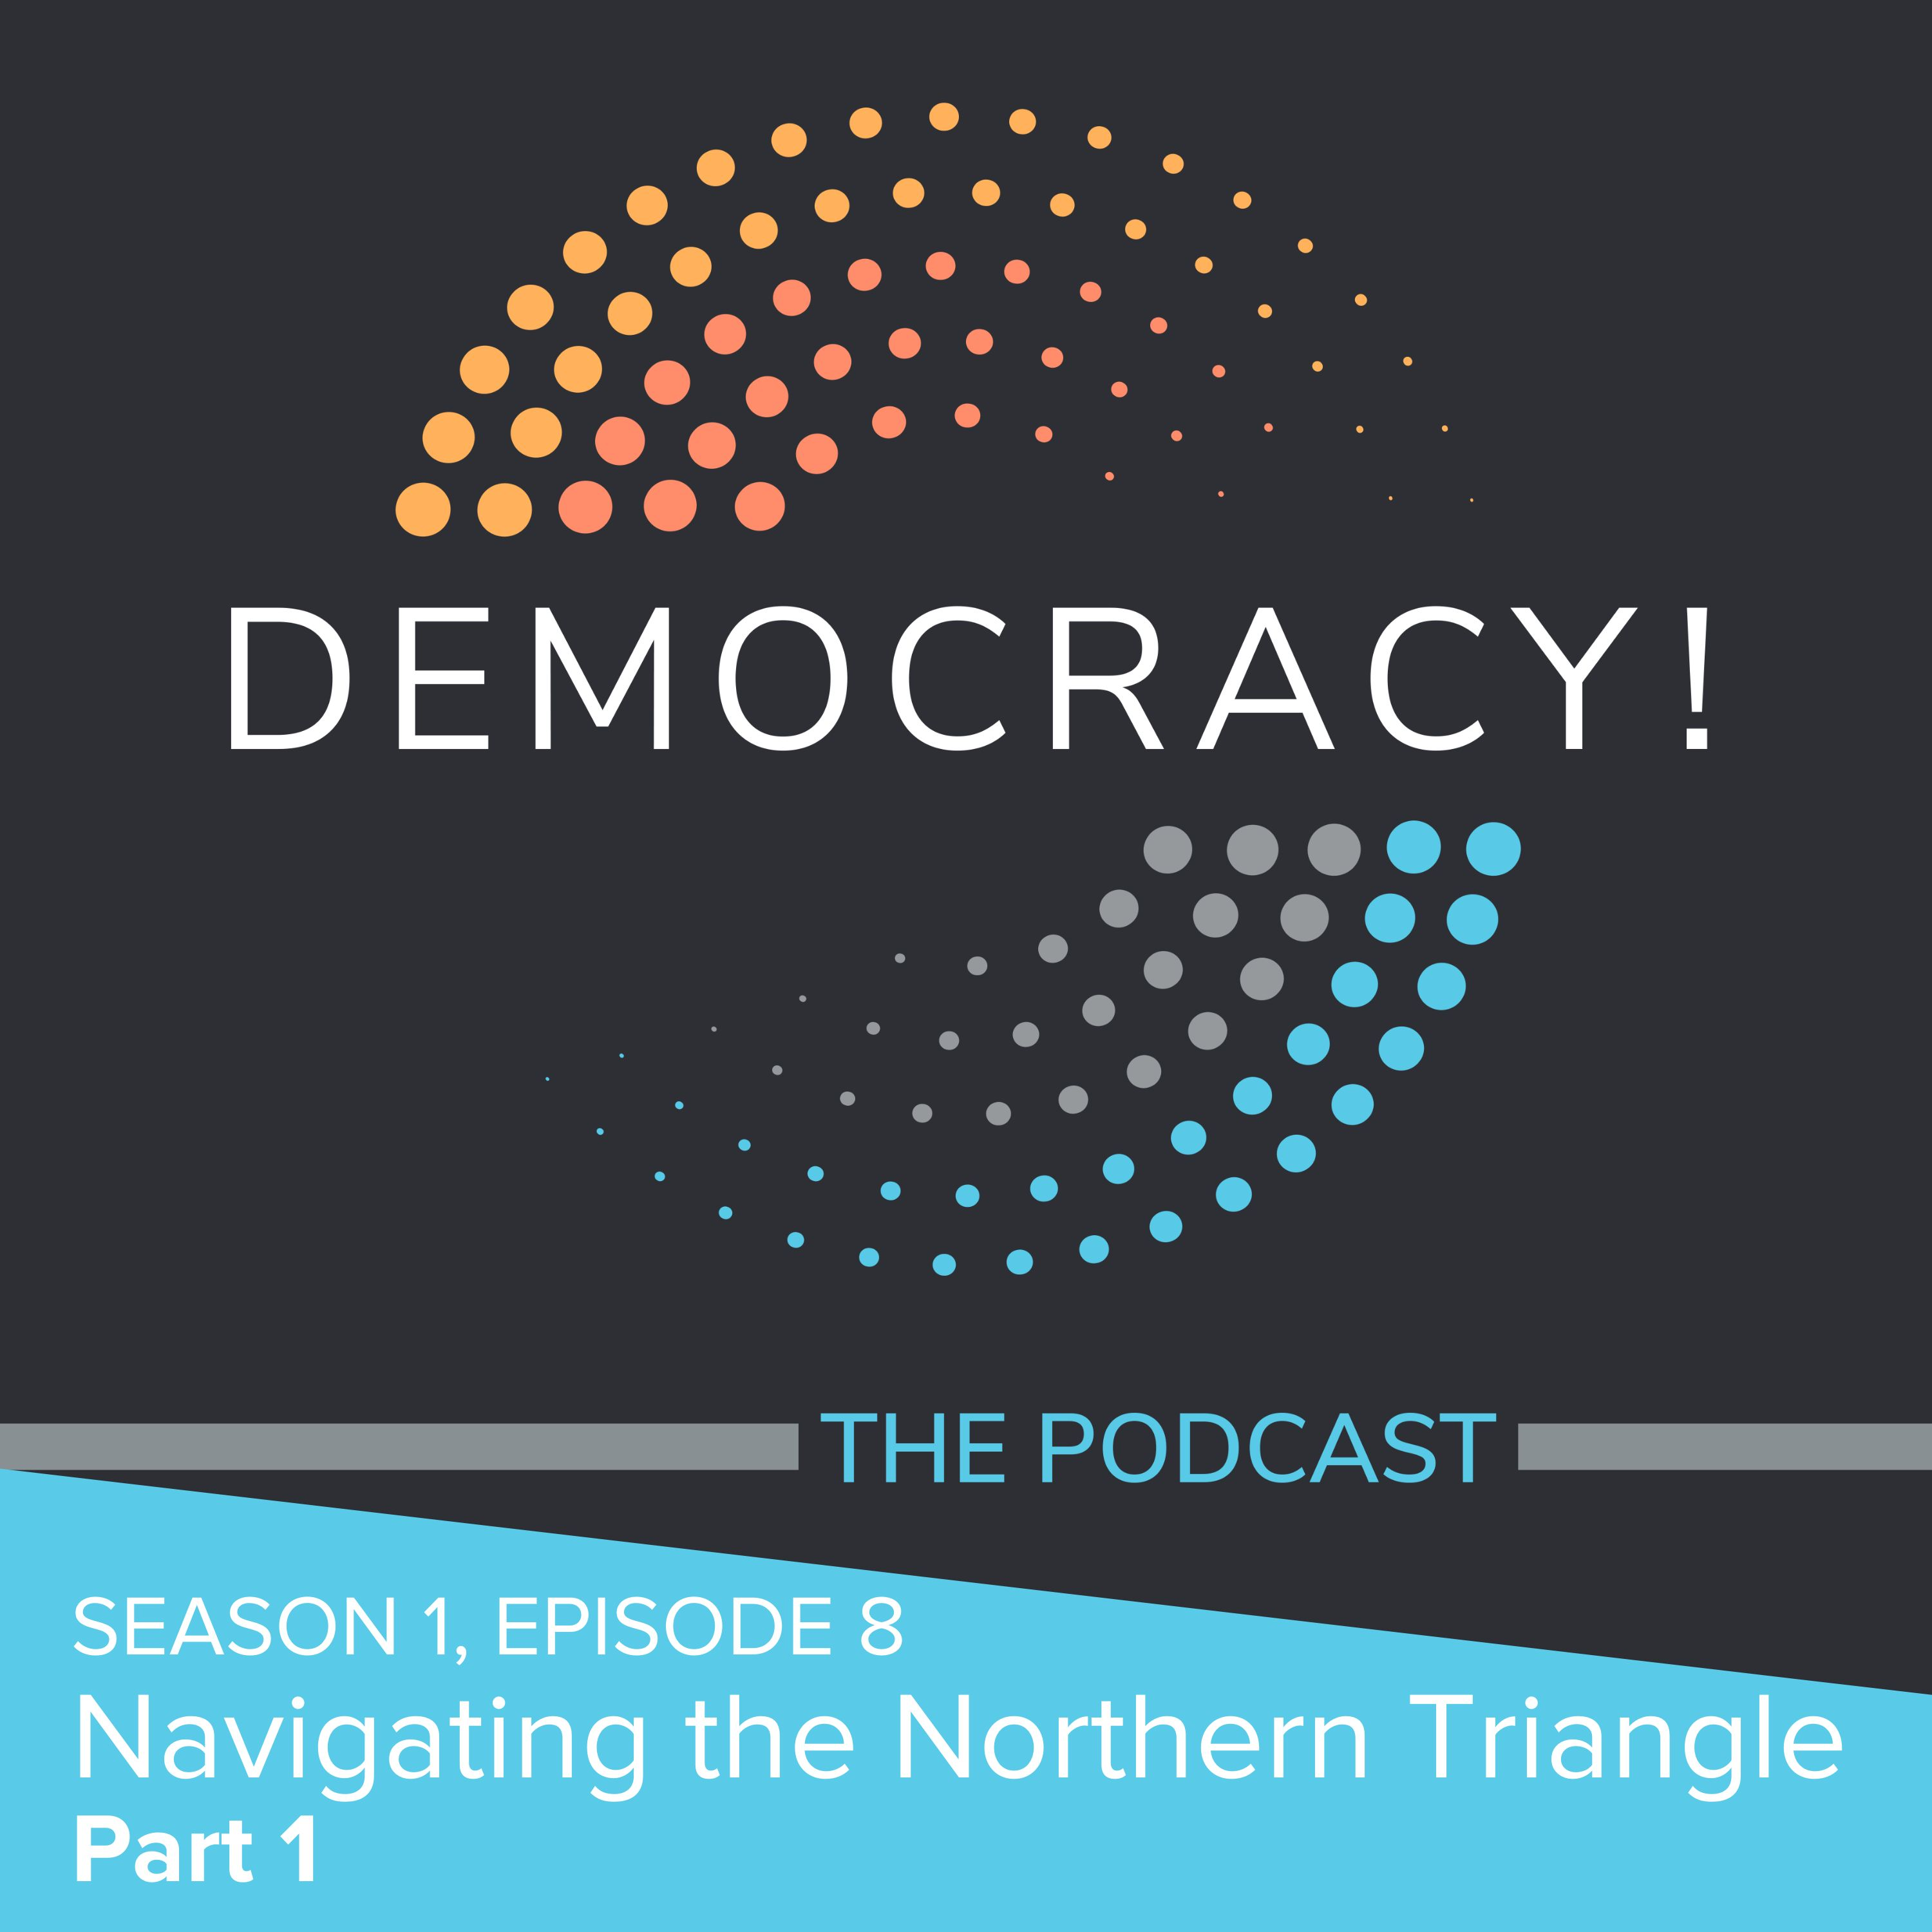 Artwork for podcast Democracy! The Podcast